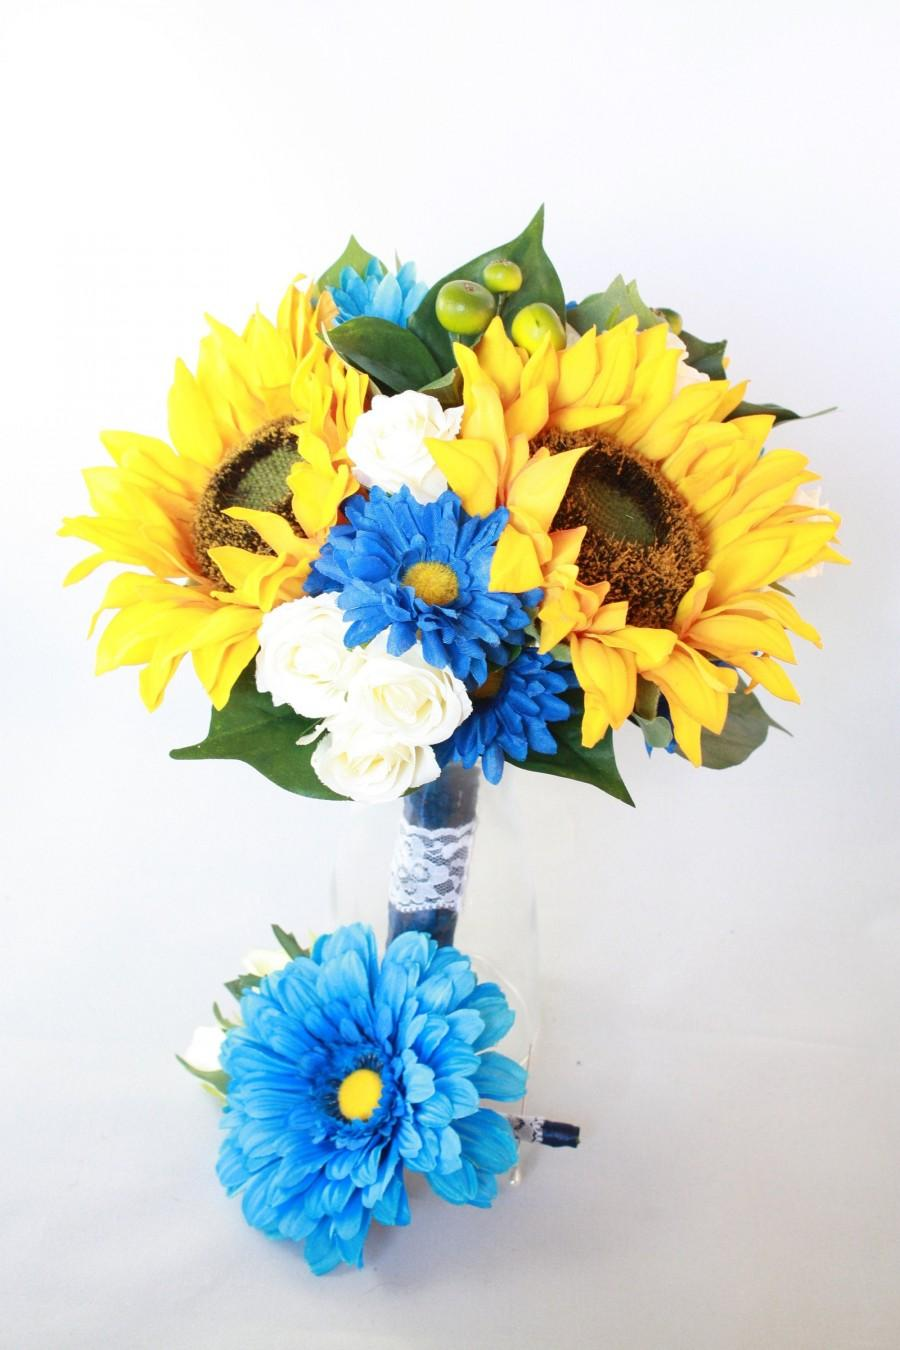 Mariage - Premium Silk Bouquet & Boutonniere Set - Court House/elope wedding - Yellow, Blue, Navy, White - Sunflower, Daisies, Roses, Lace, Rustic